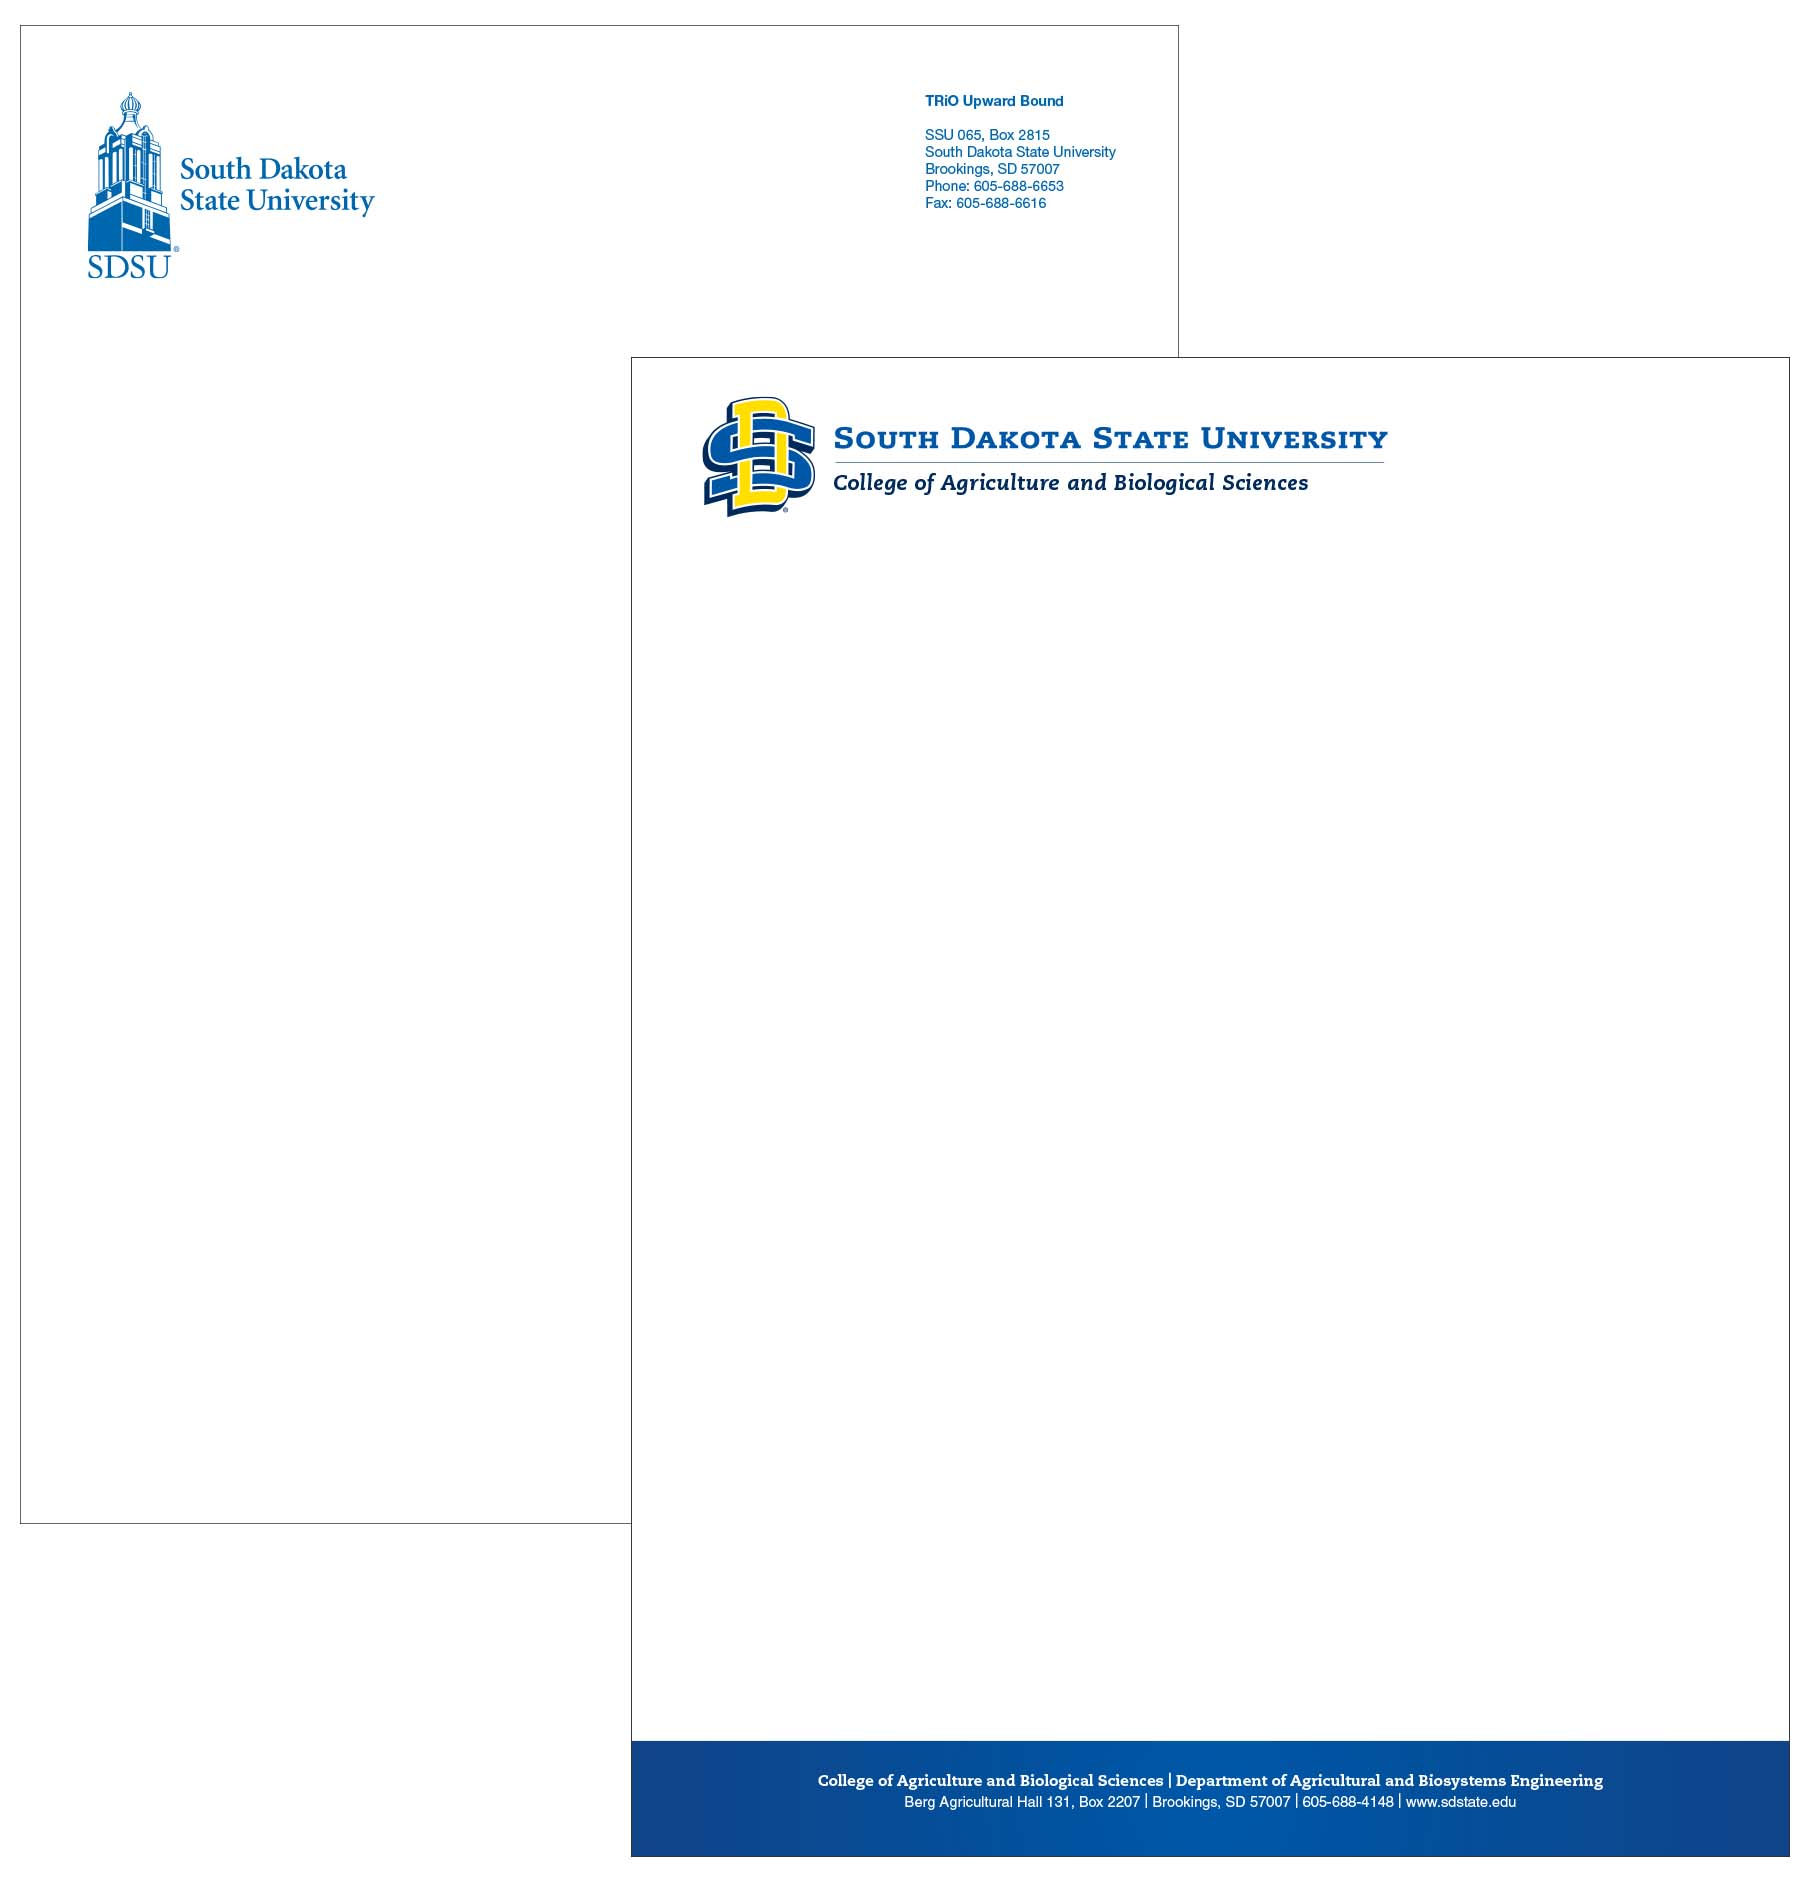 Letterhead Envelopes: South Dakota State University